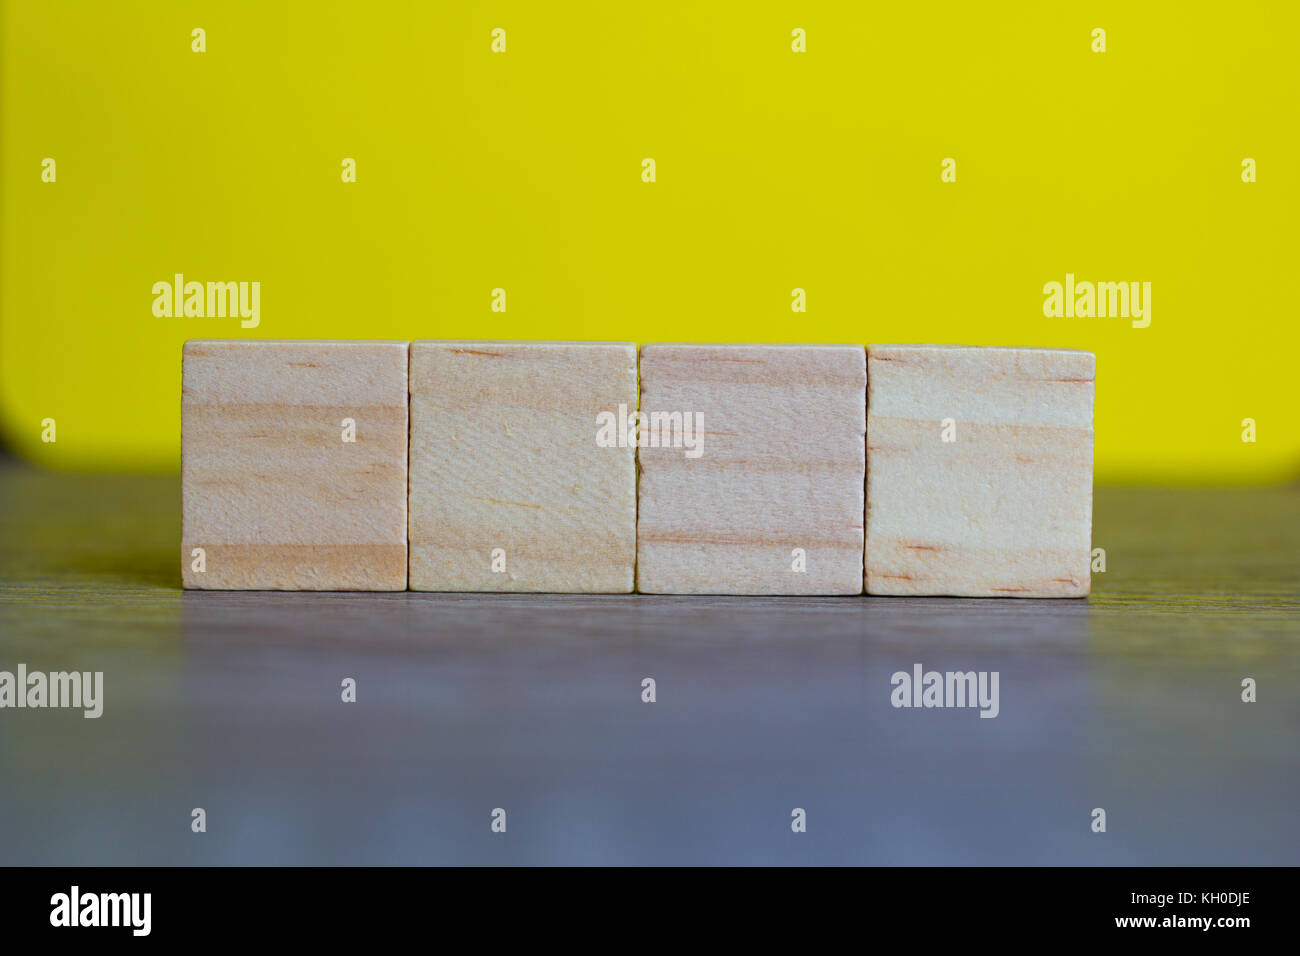 Four Empty Wood Cubes against yellow background - Stock Image